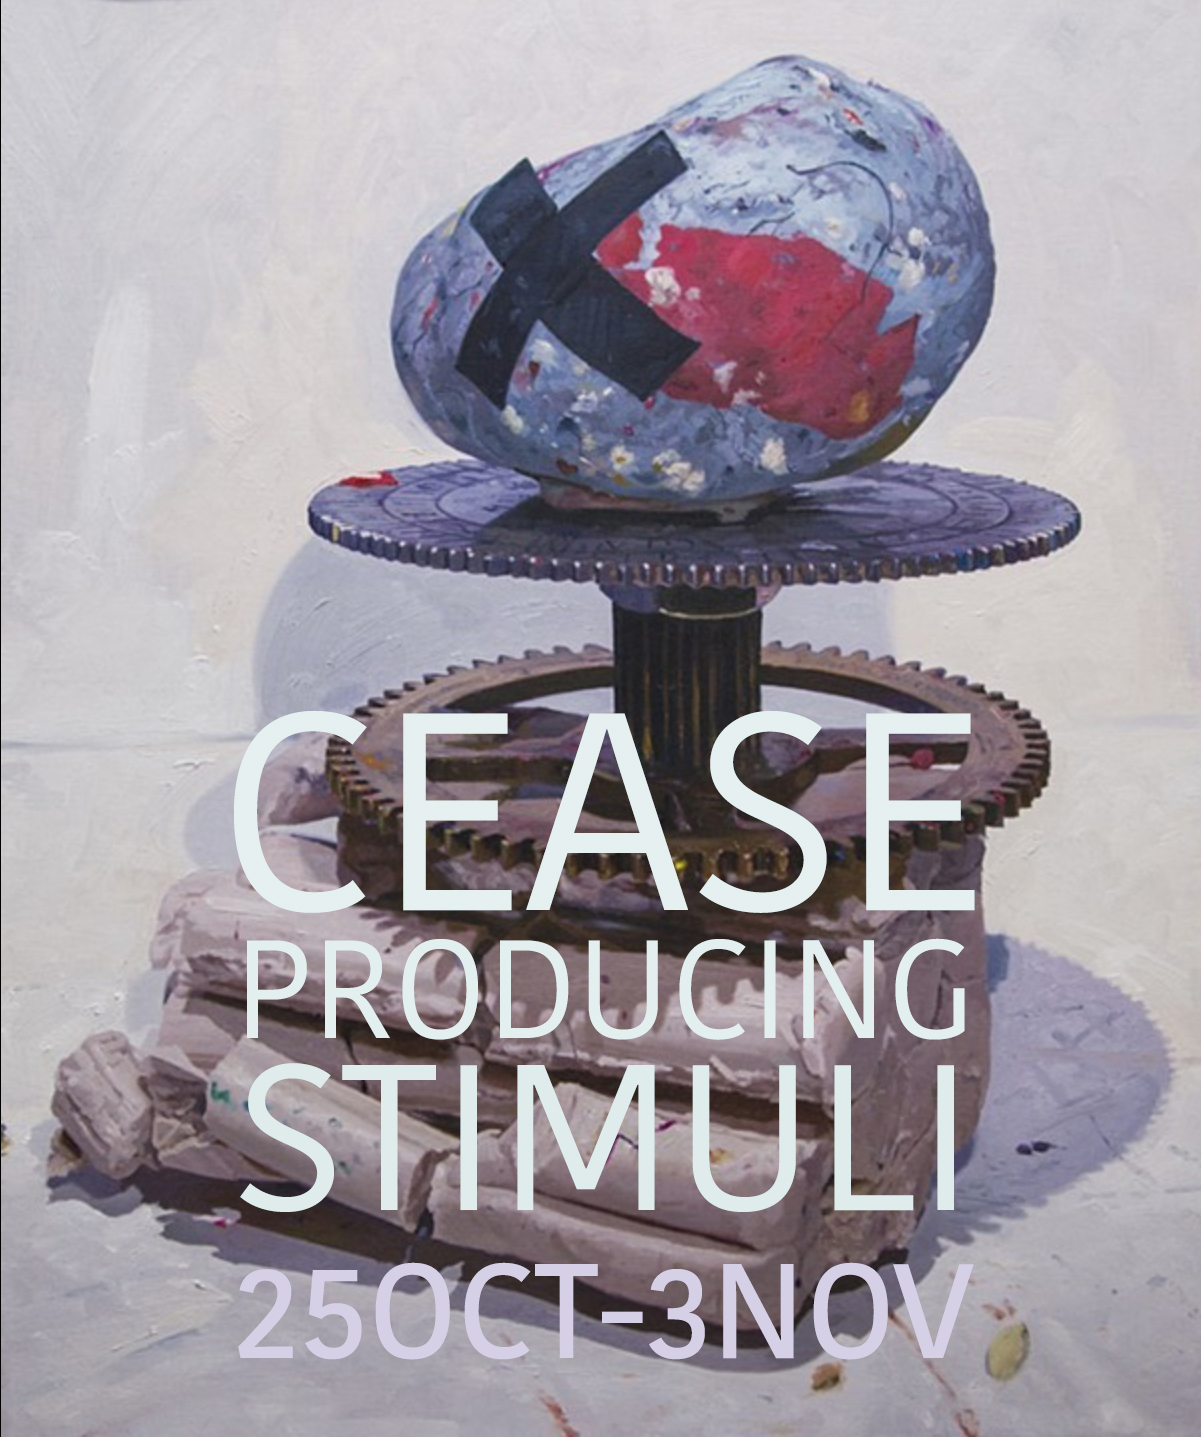 Cease Producing Stimuli Poster